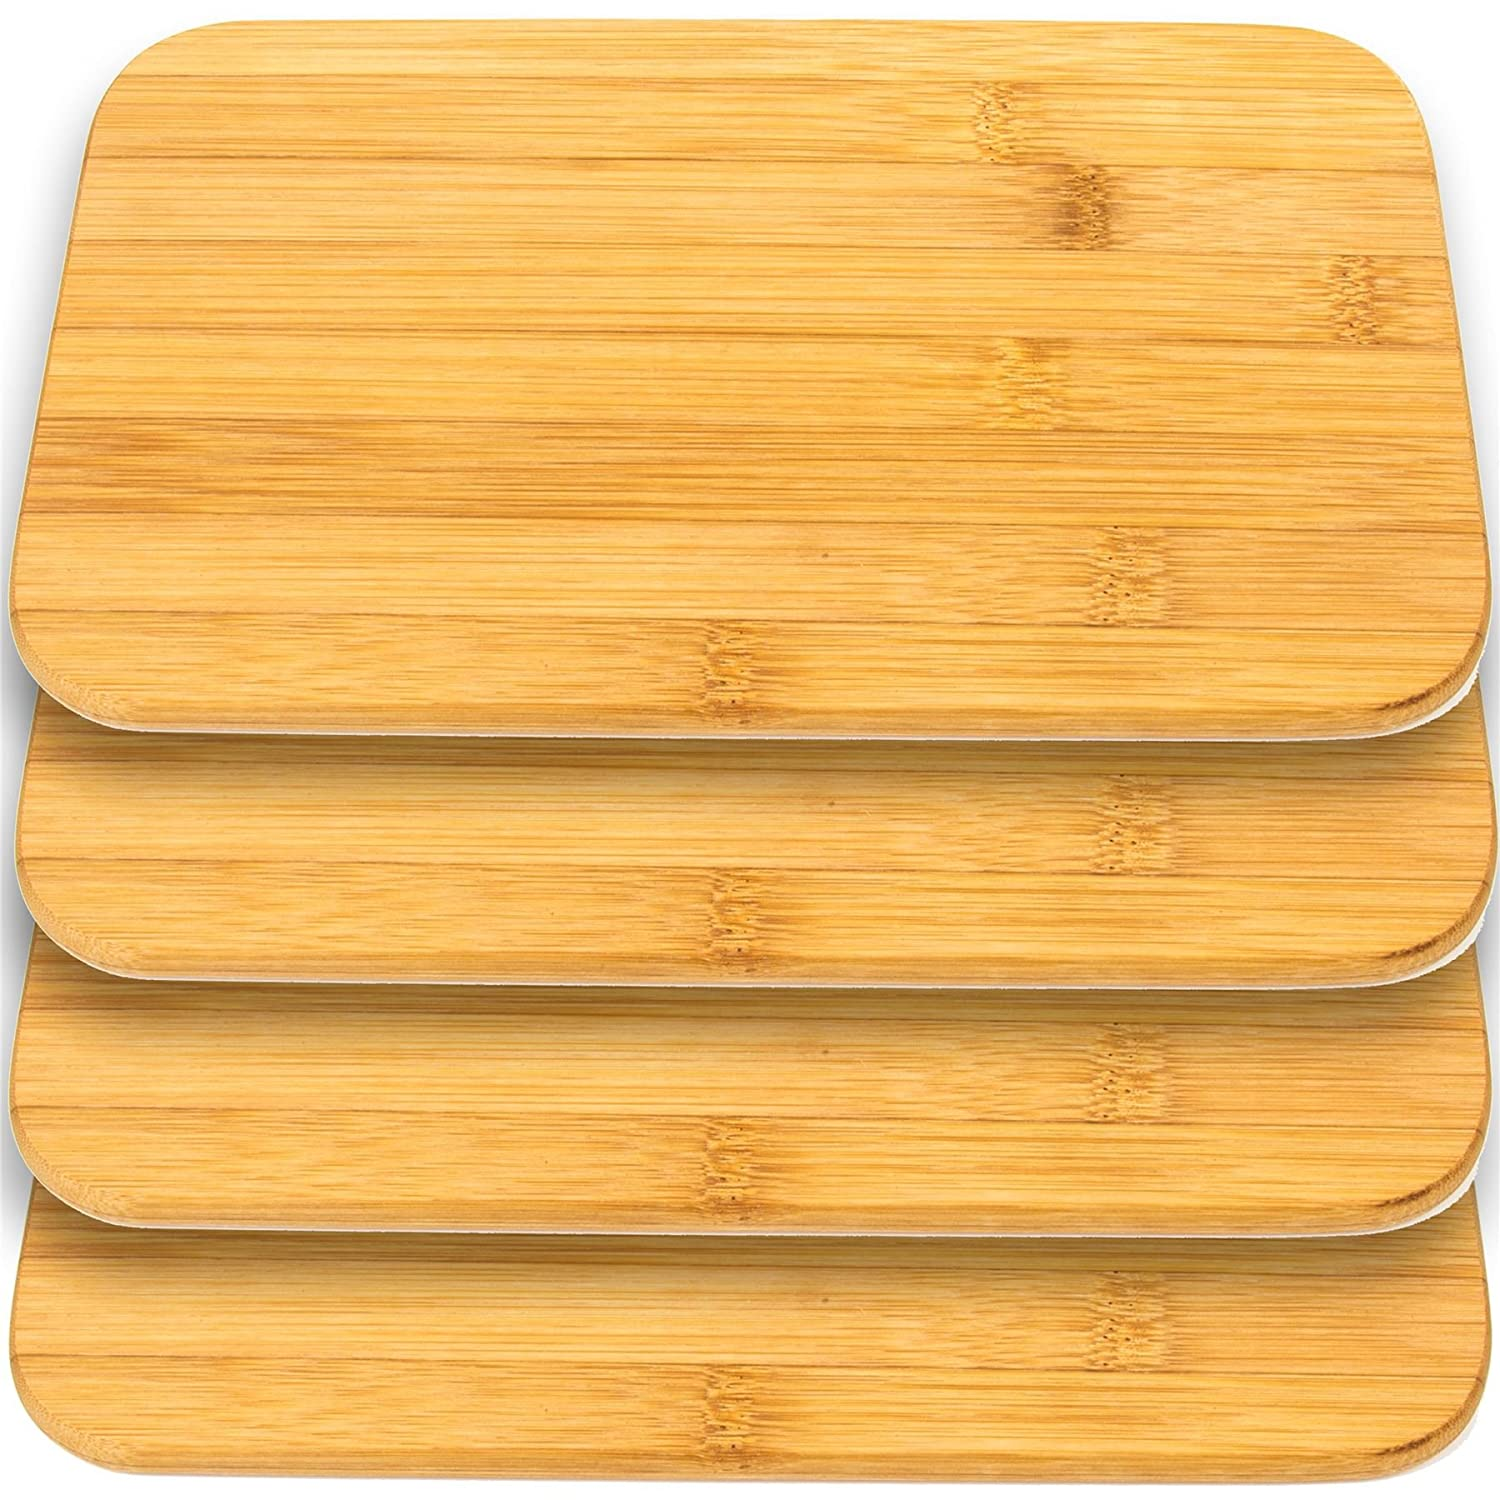 4x Real Bamboo Wooden Plates - Breakfast/Dinner Food Serving Platters/Cutting Boards White Hinge